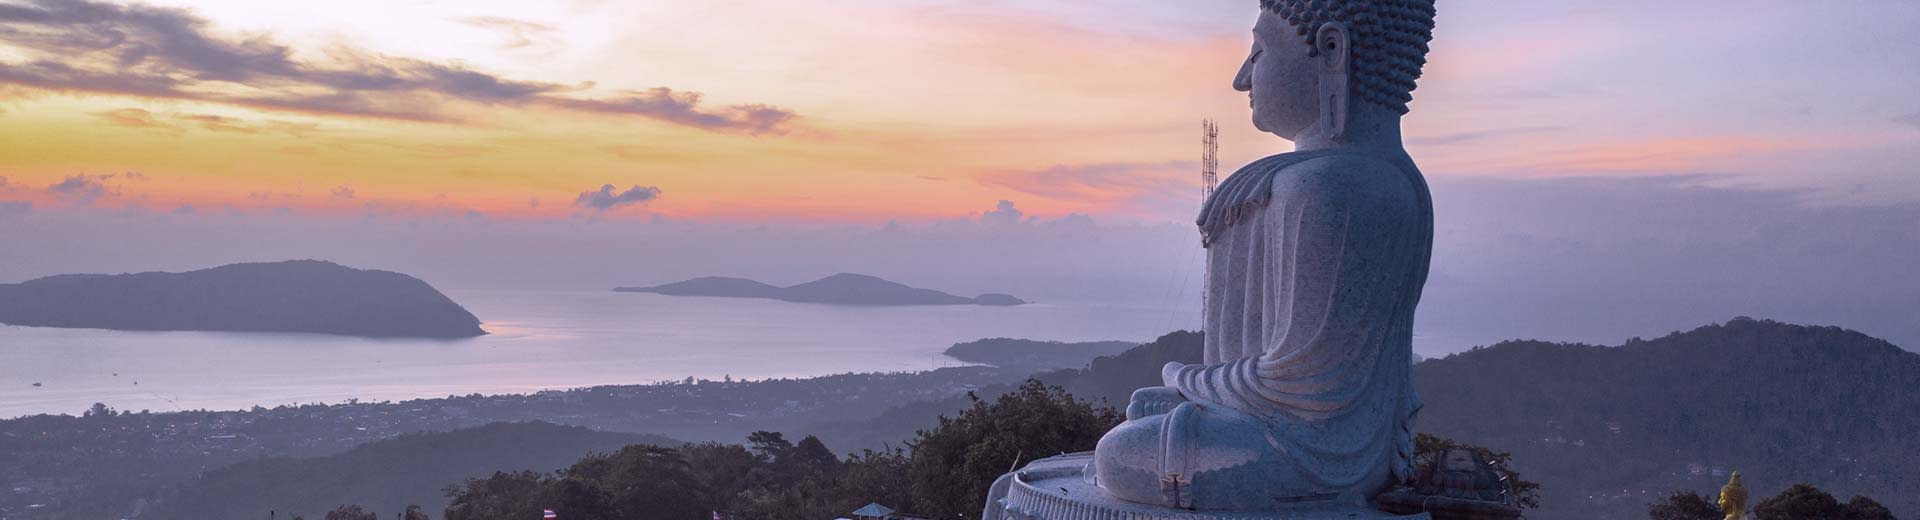 A religious statue sits on top of a hill, overlooking a coastline in the half-light of dusk